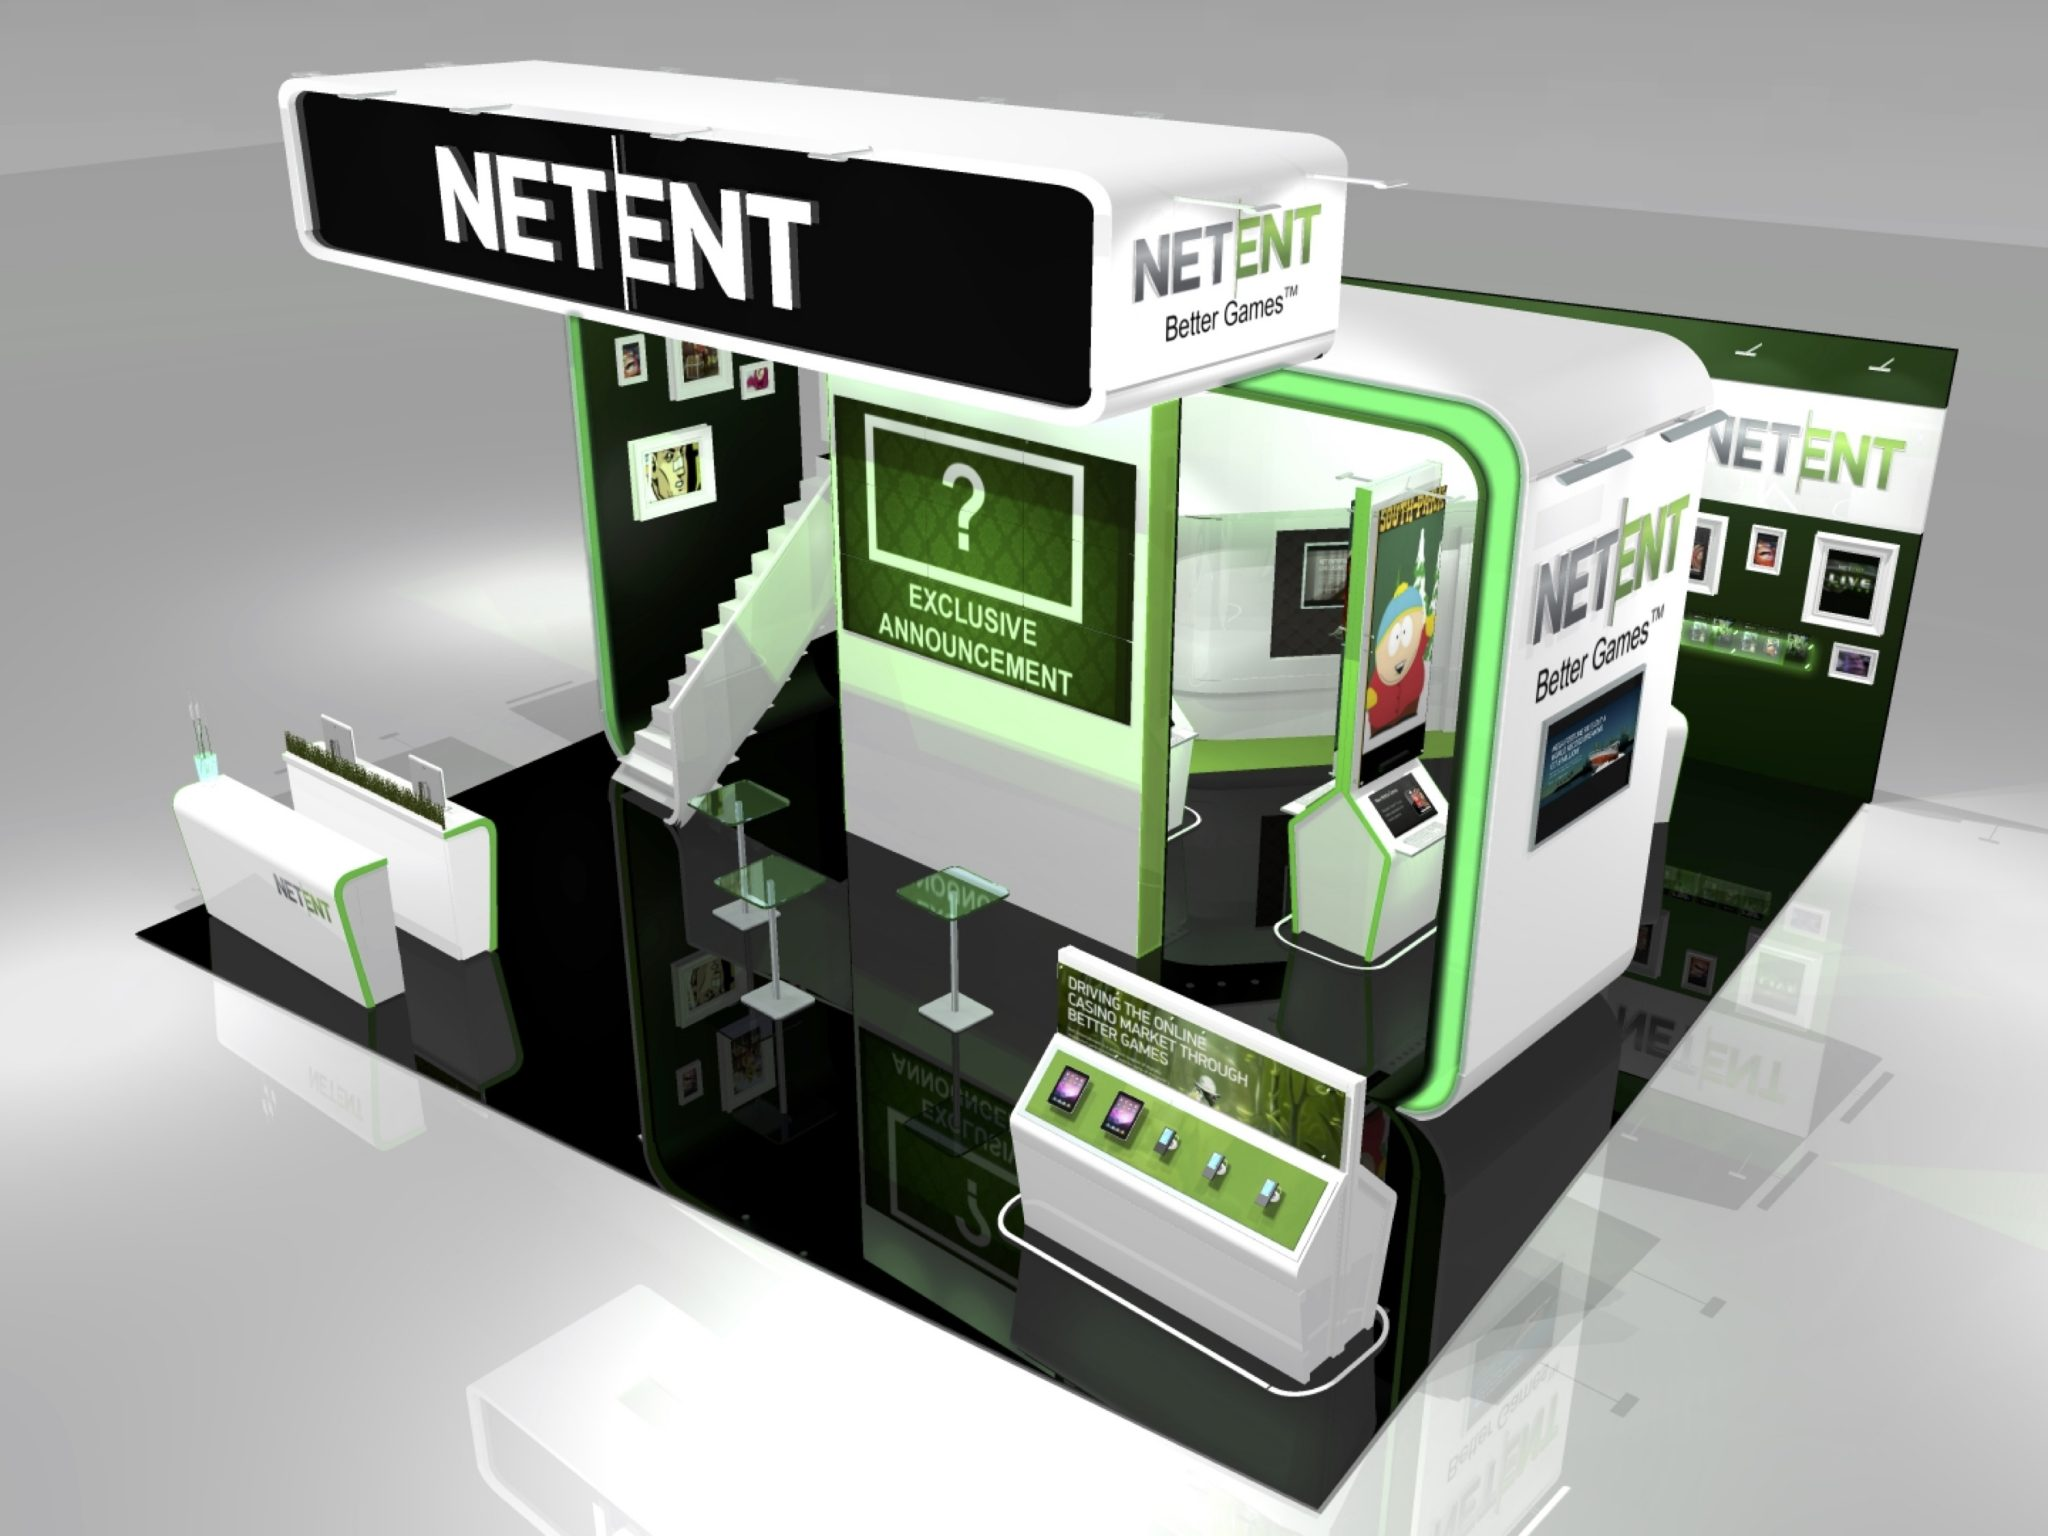 Exhibition Stand Games : Netent at eig & ice totally gaming ice agency exhibition stand design